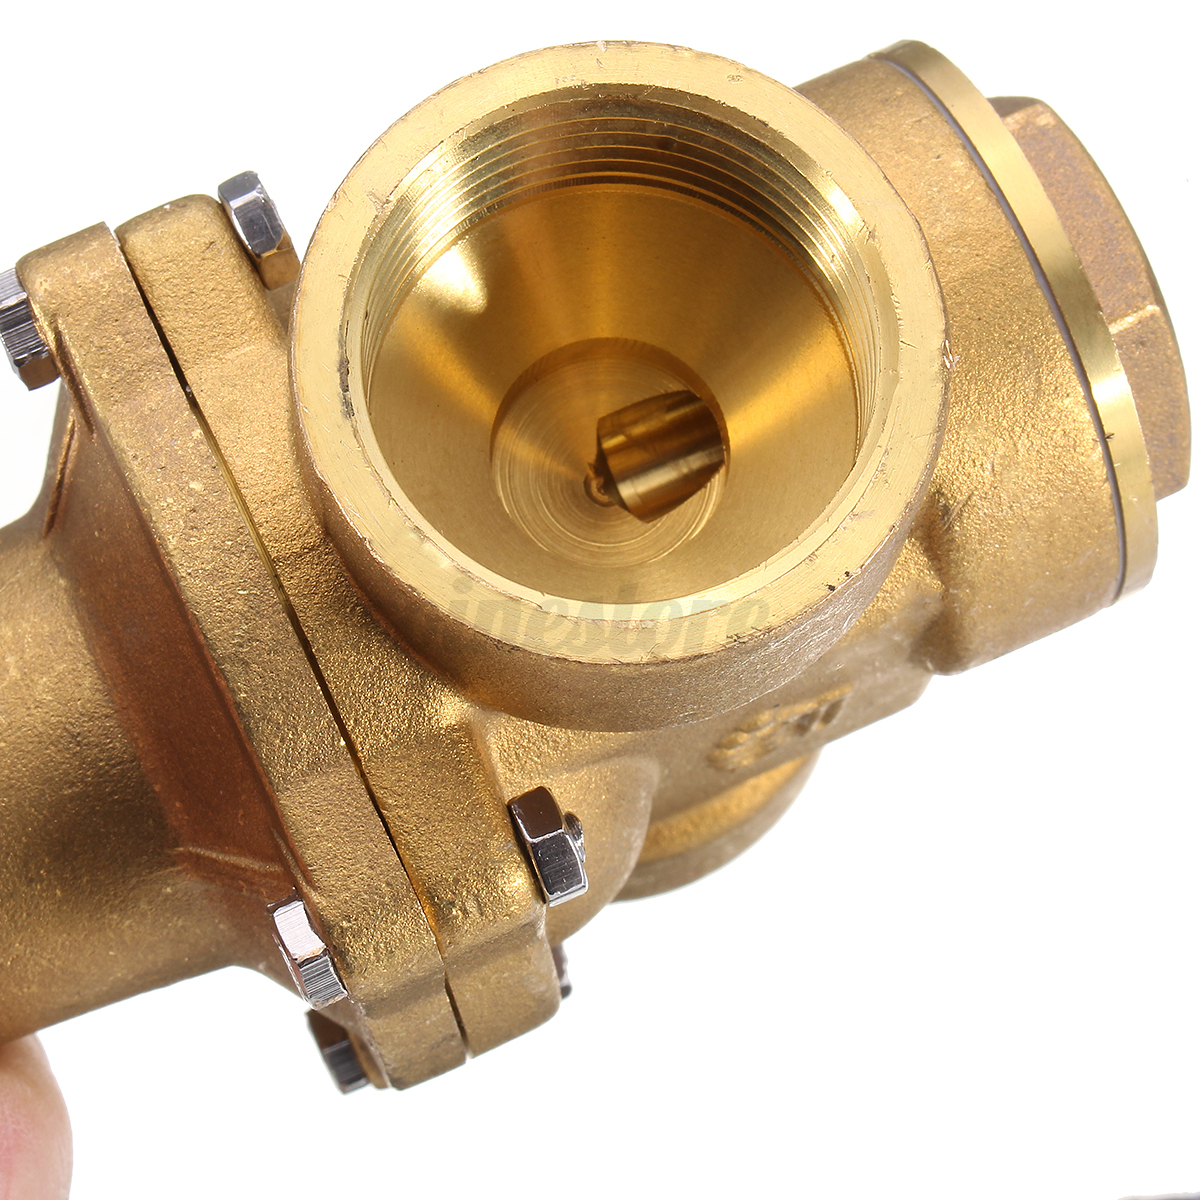 3 4 39 39 adjustable brass water pressure reducing valve regulator dn15 dn20 dn25 ebay. Black Bedroom Furniture Sets. Home Design Ideas